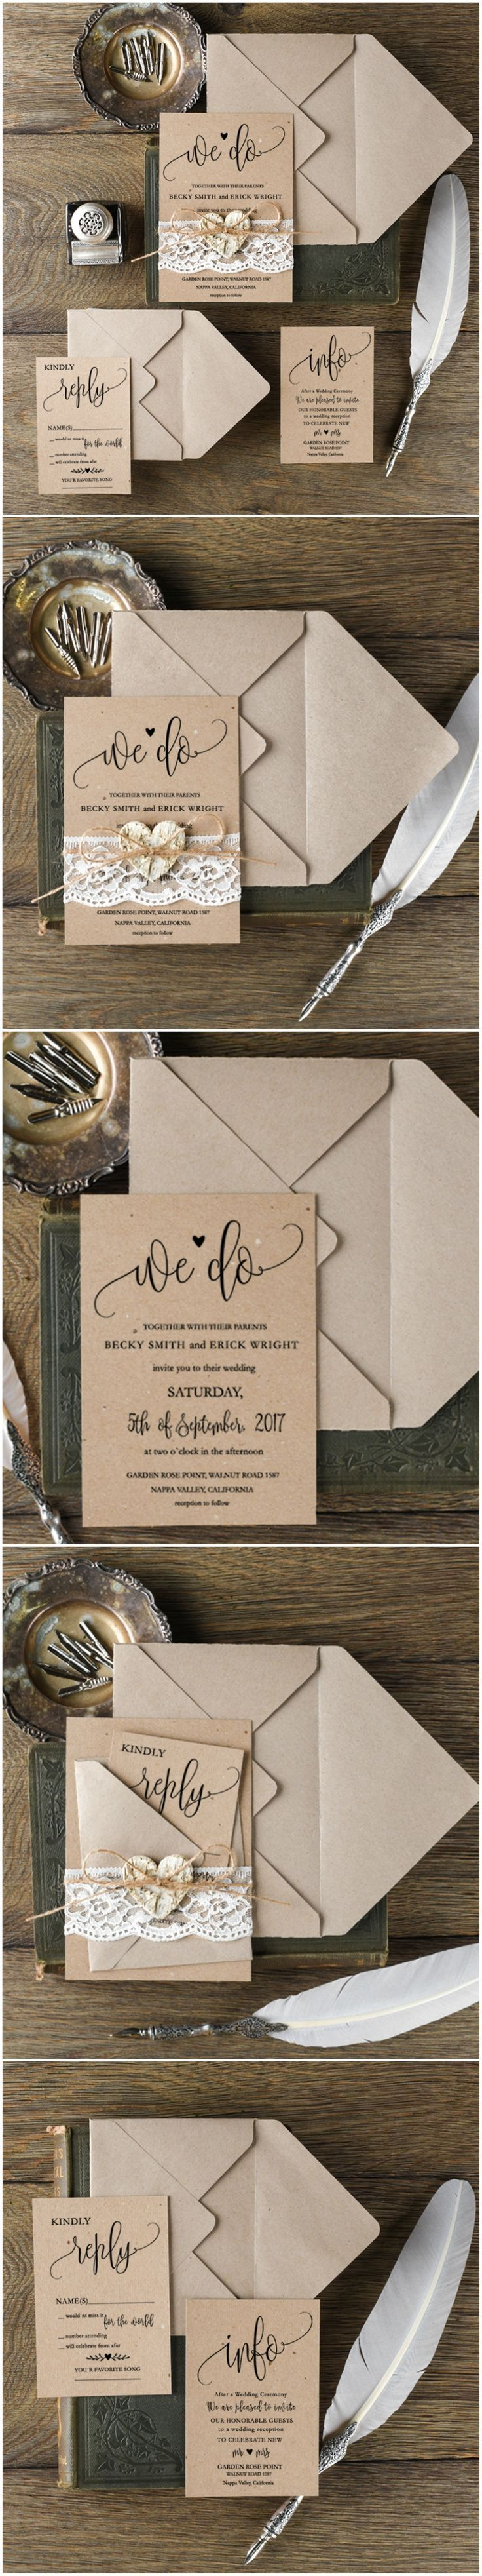 Best 44 Wedding Invitations Ideas On Pinterest Card Wedding